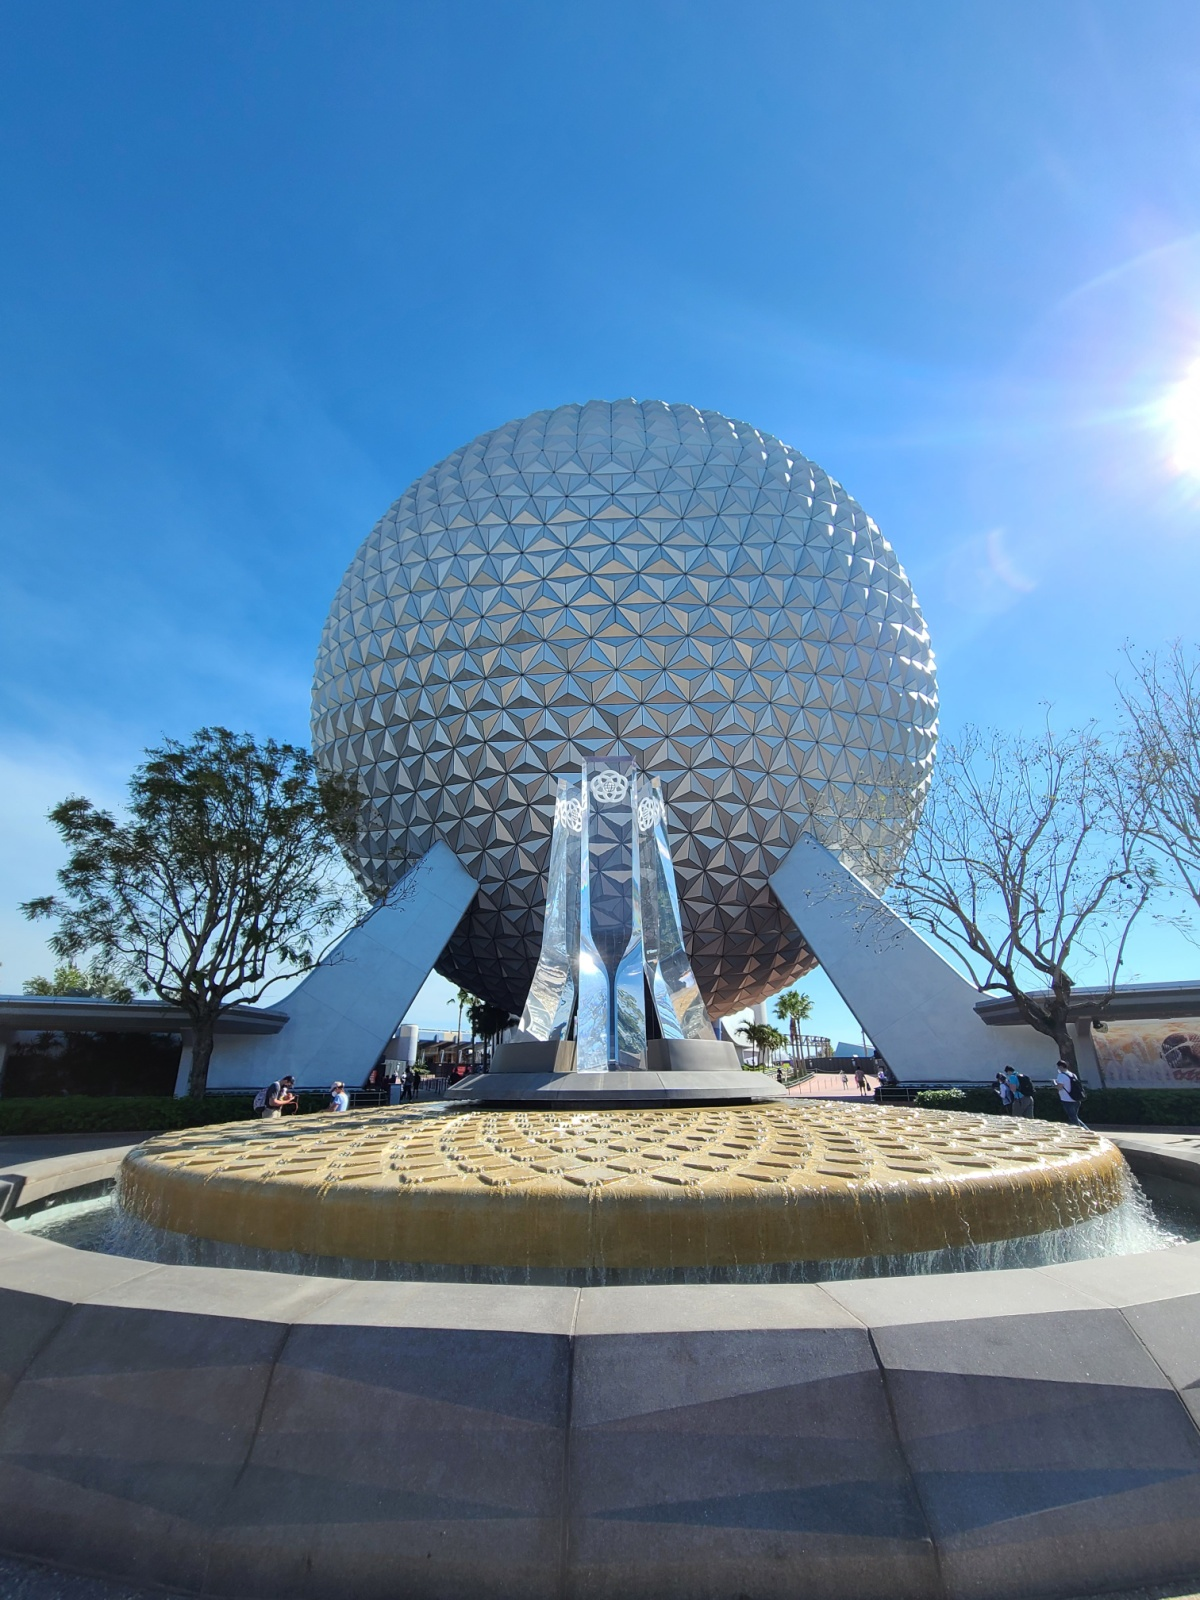 Top Things To Do at Epcot Flower and Garden Festival